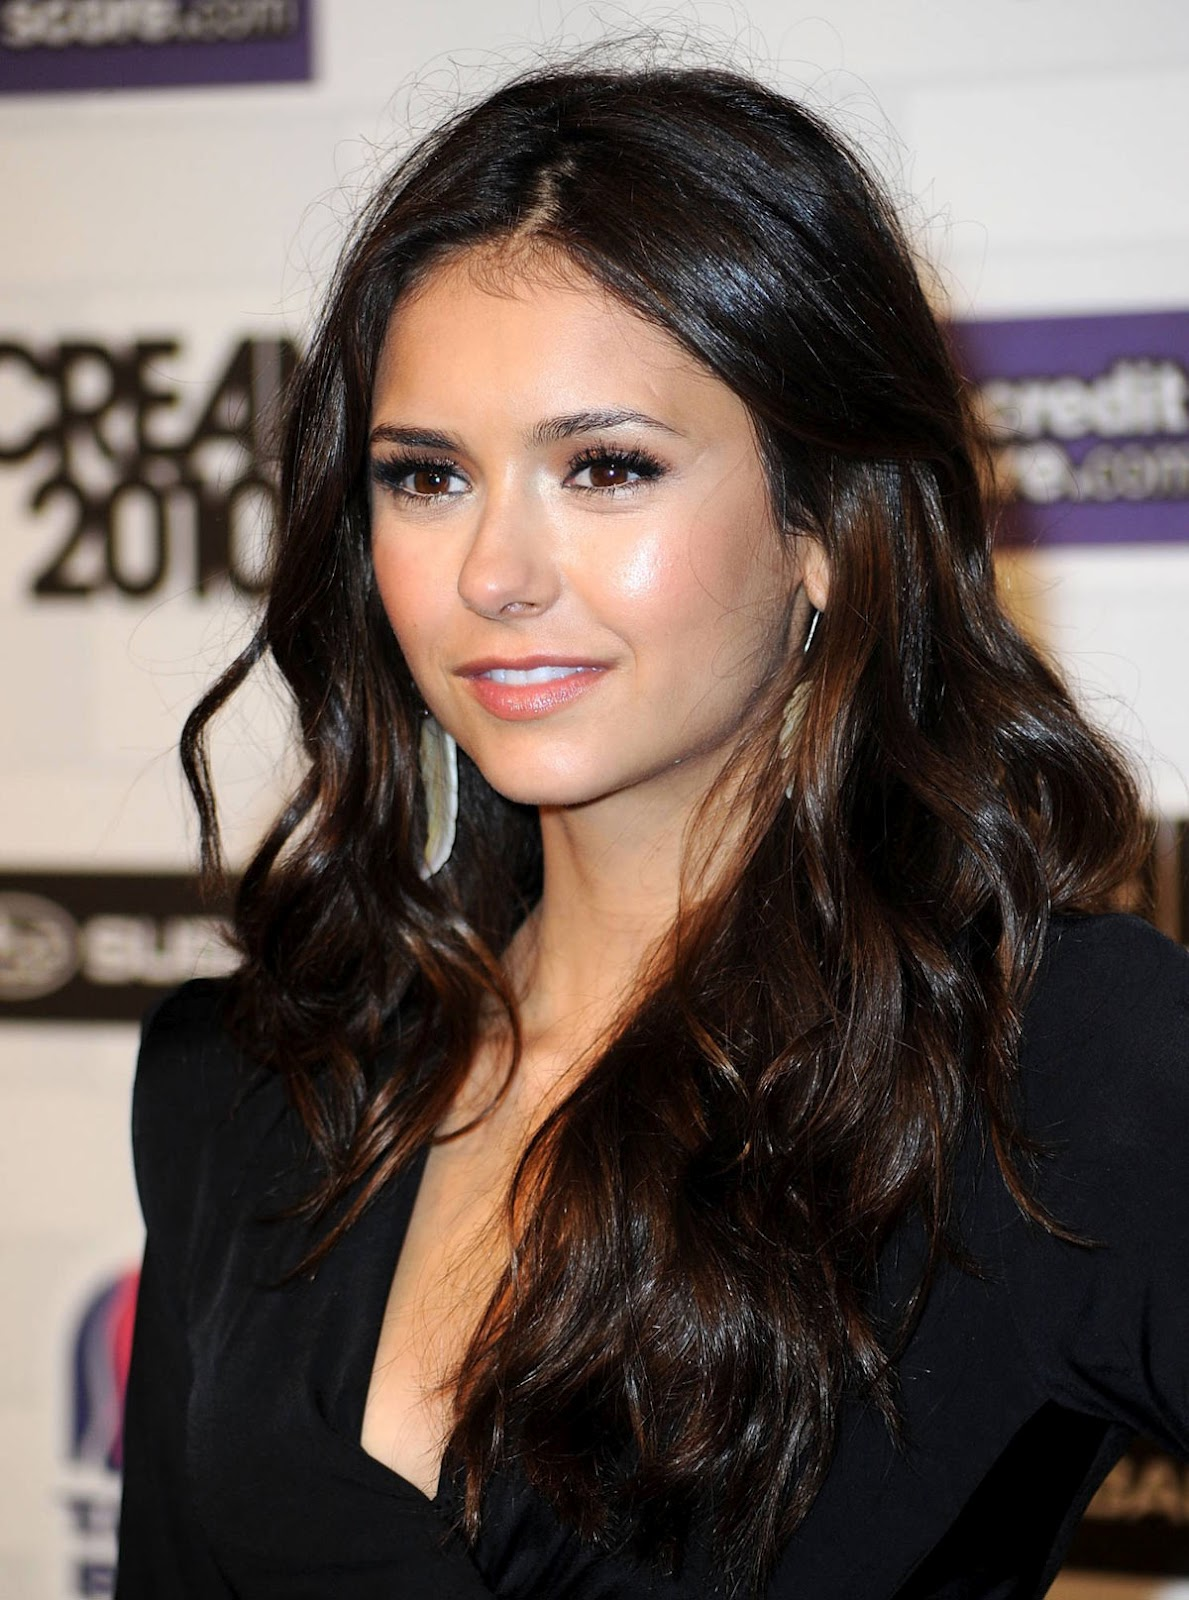 hairstyle of nina dobrev hair fashion 2012. Black Bedroom Furniture Sets. Home Design Ideas